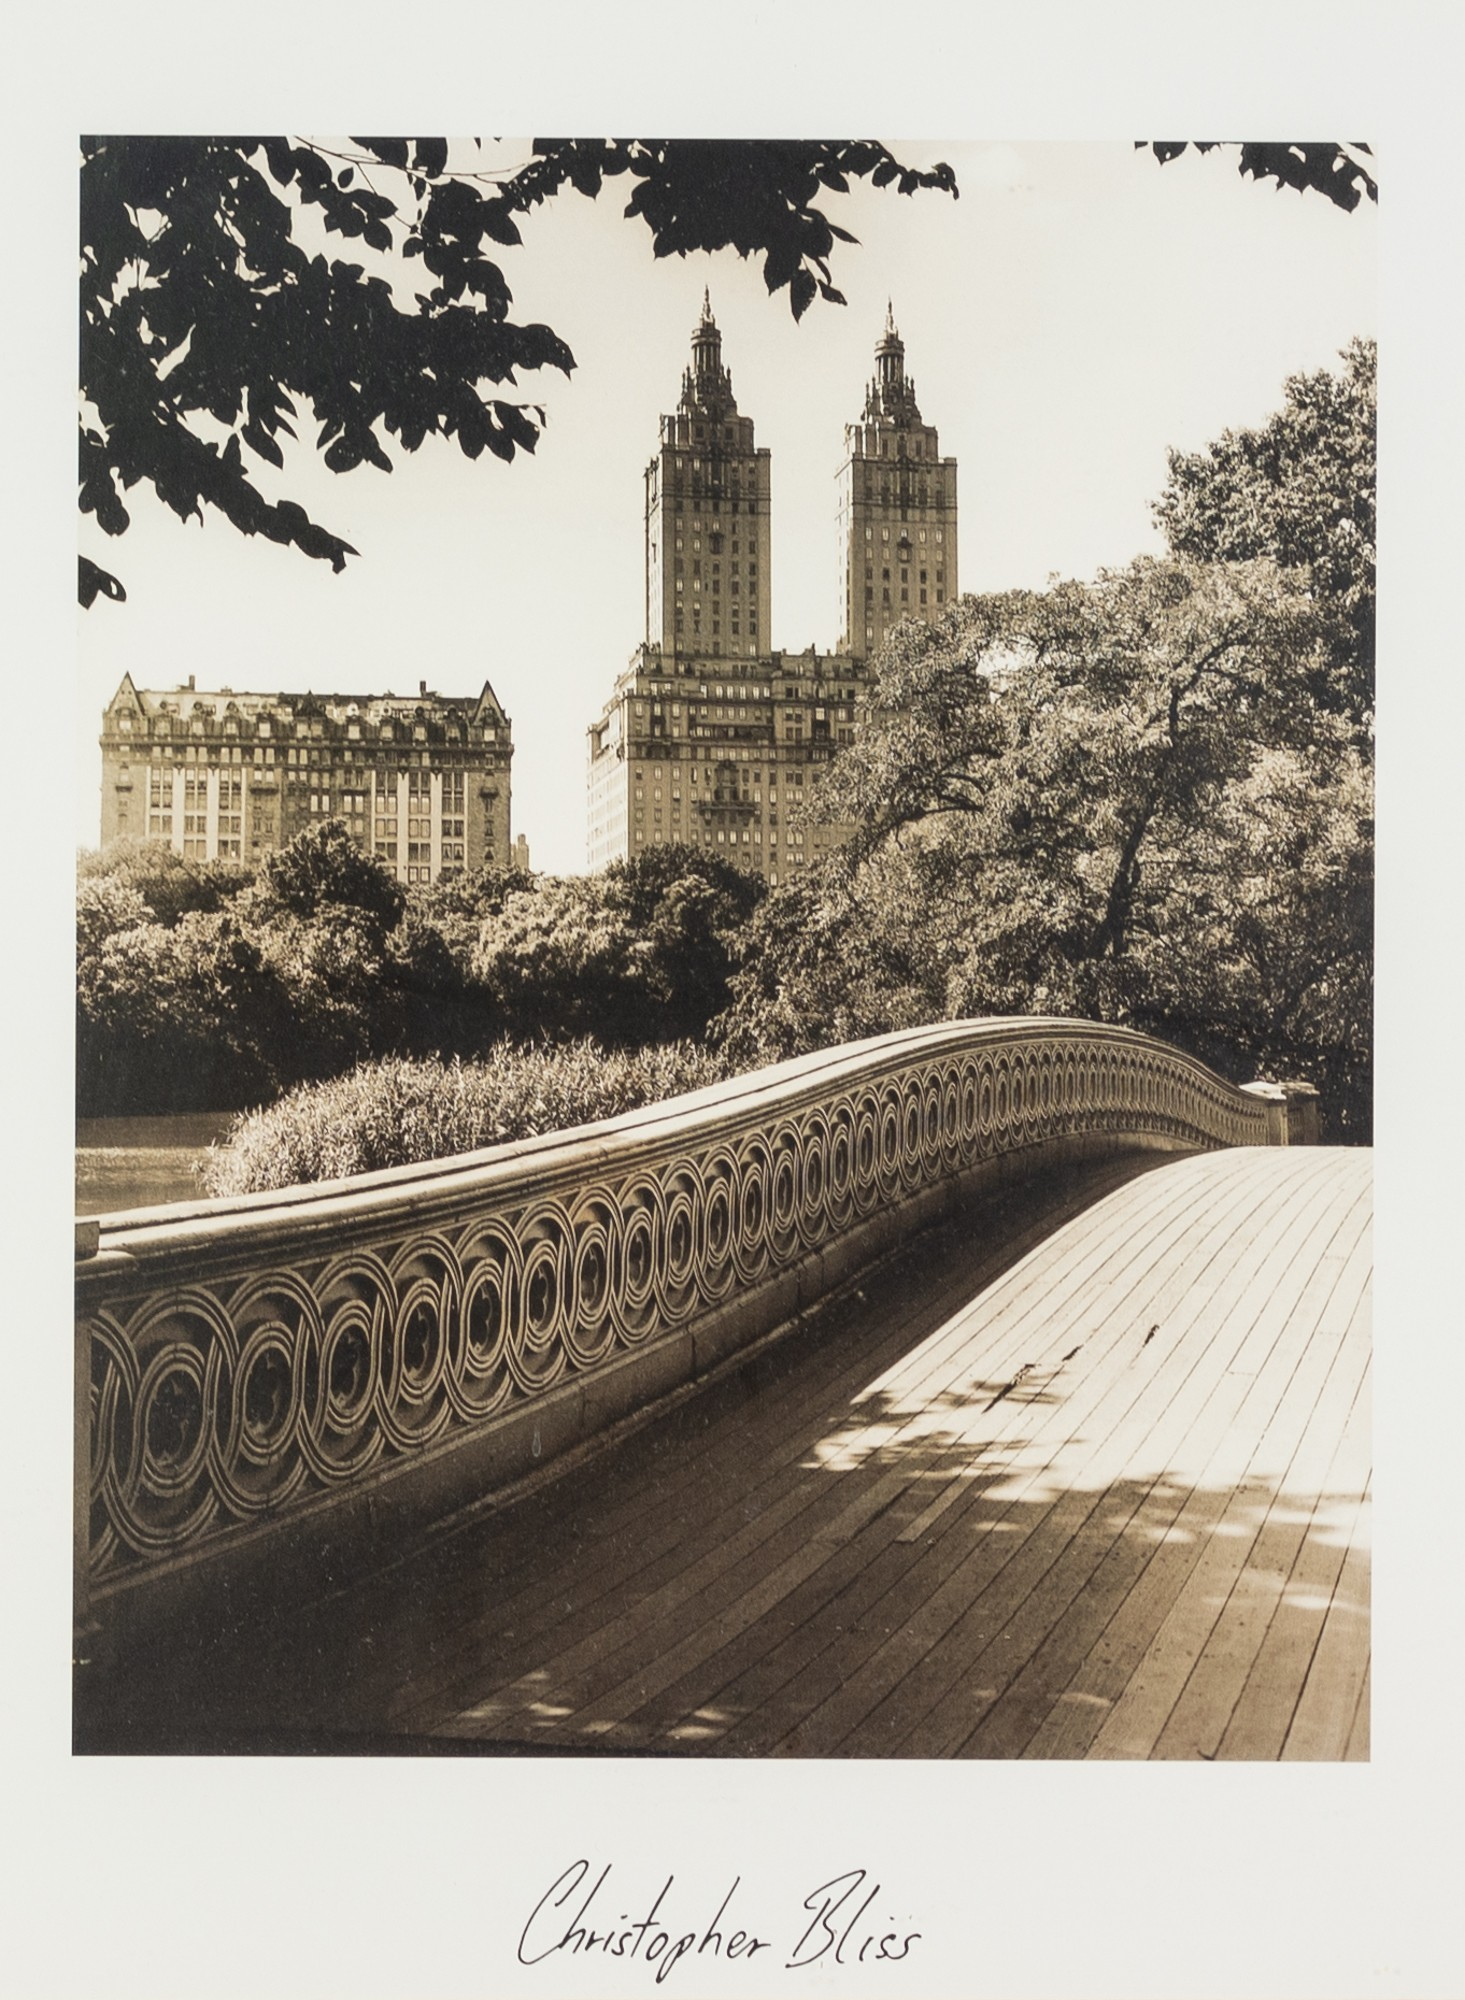 CHRISTOPHER BLISS (AMERICAN) TWO BLACK AND WHITE PHOTOGRAPHIC PRINTS New York Cityscapes each with